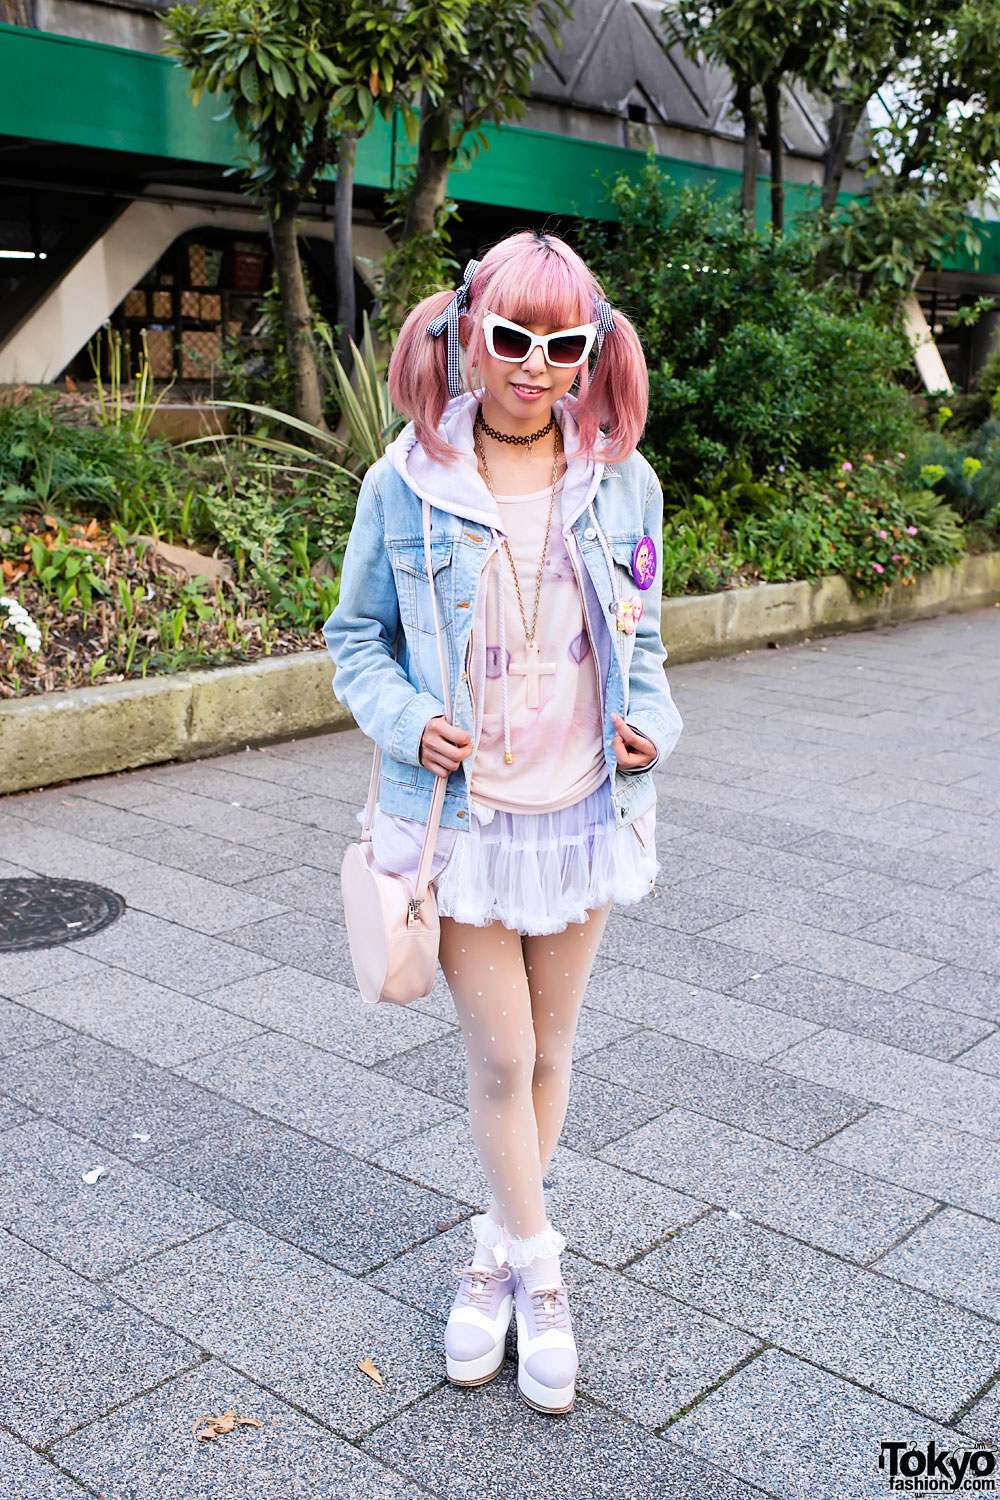 Denim Jacket & Tulle Skirt in Shibuya